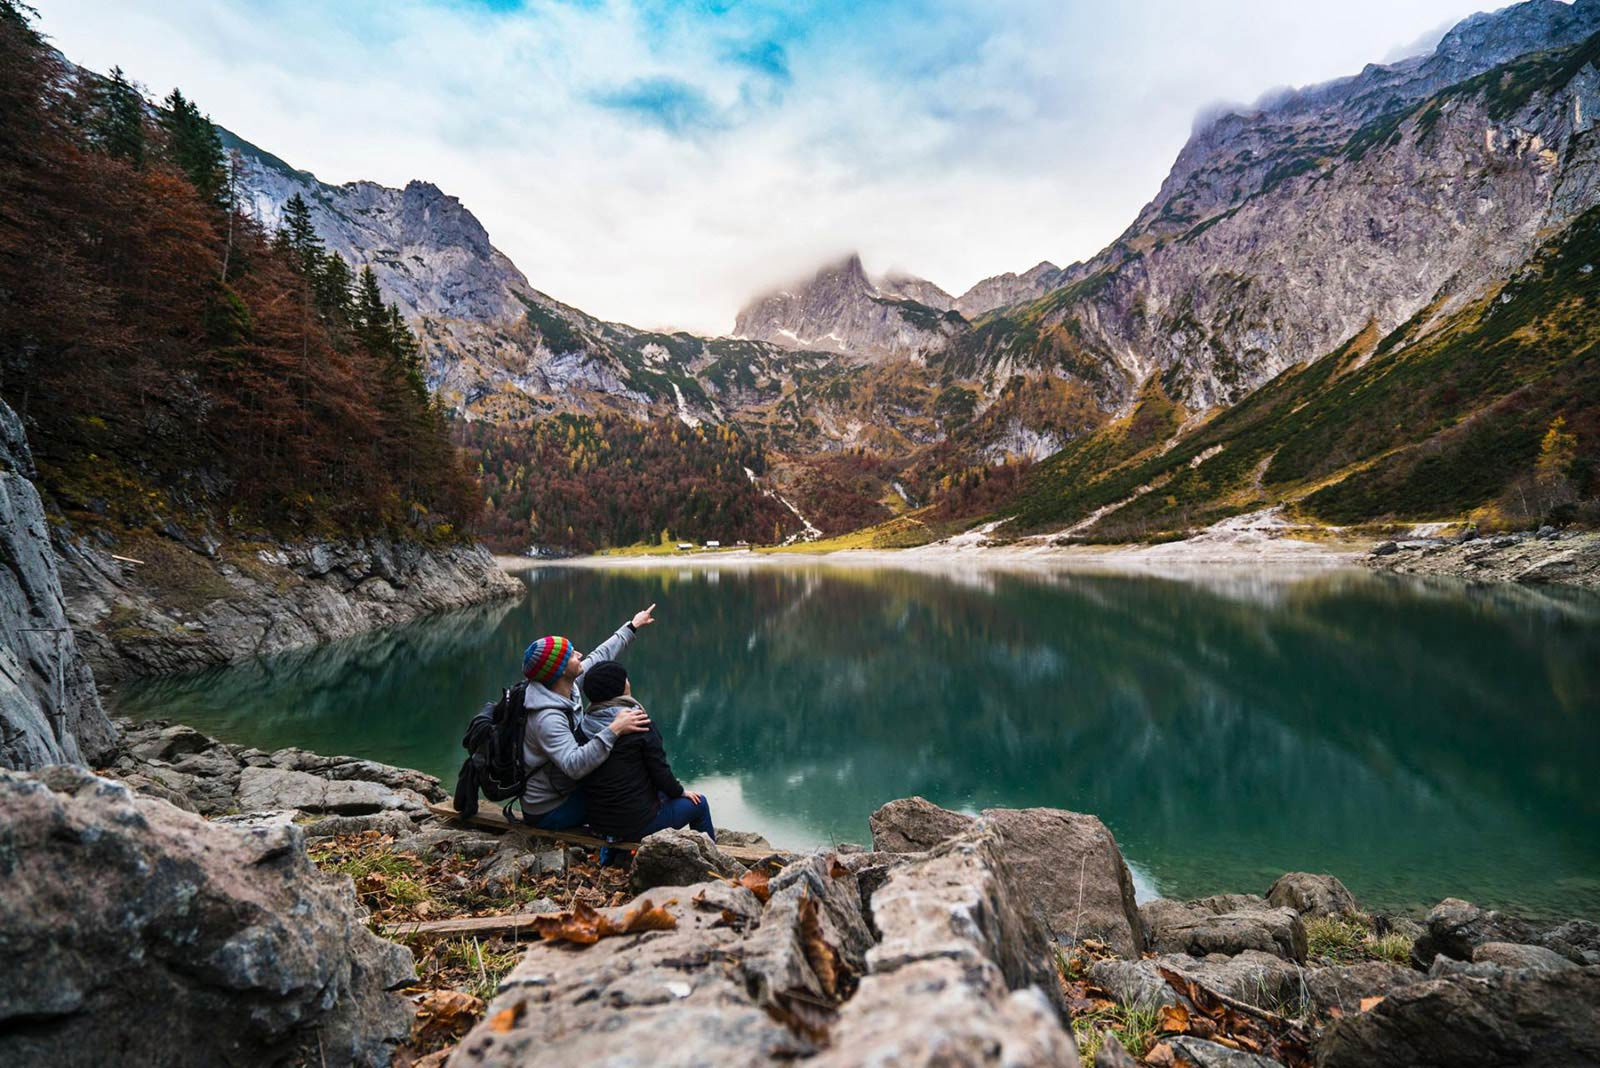 Man sitting with woman next to lake pointing at mountains.